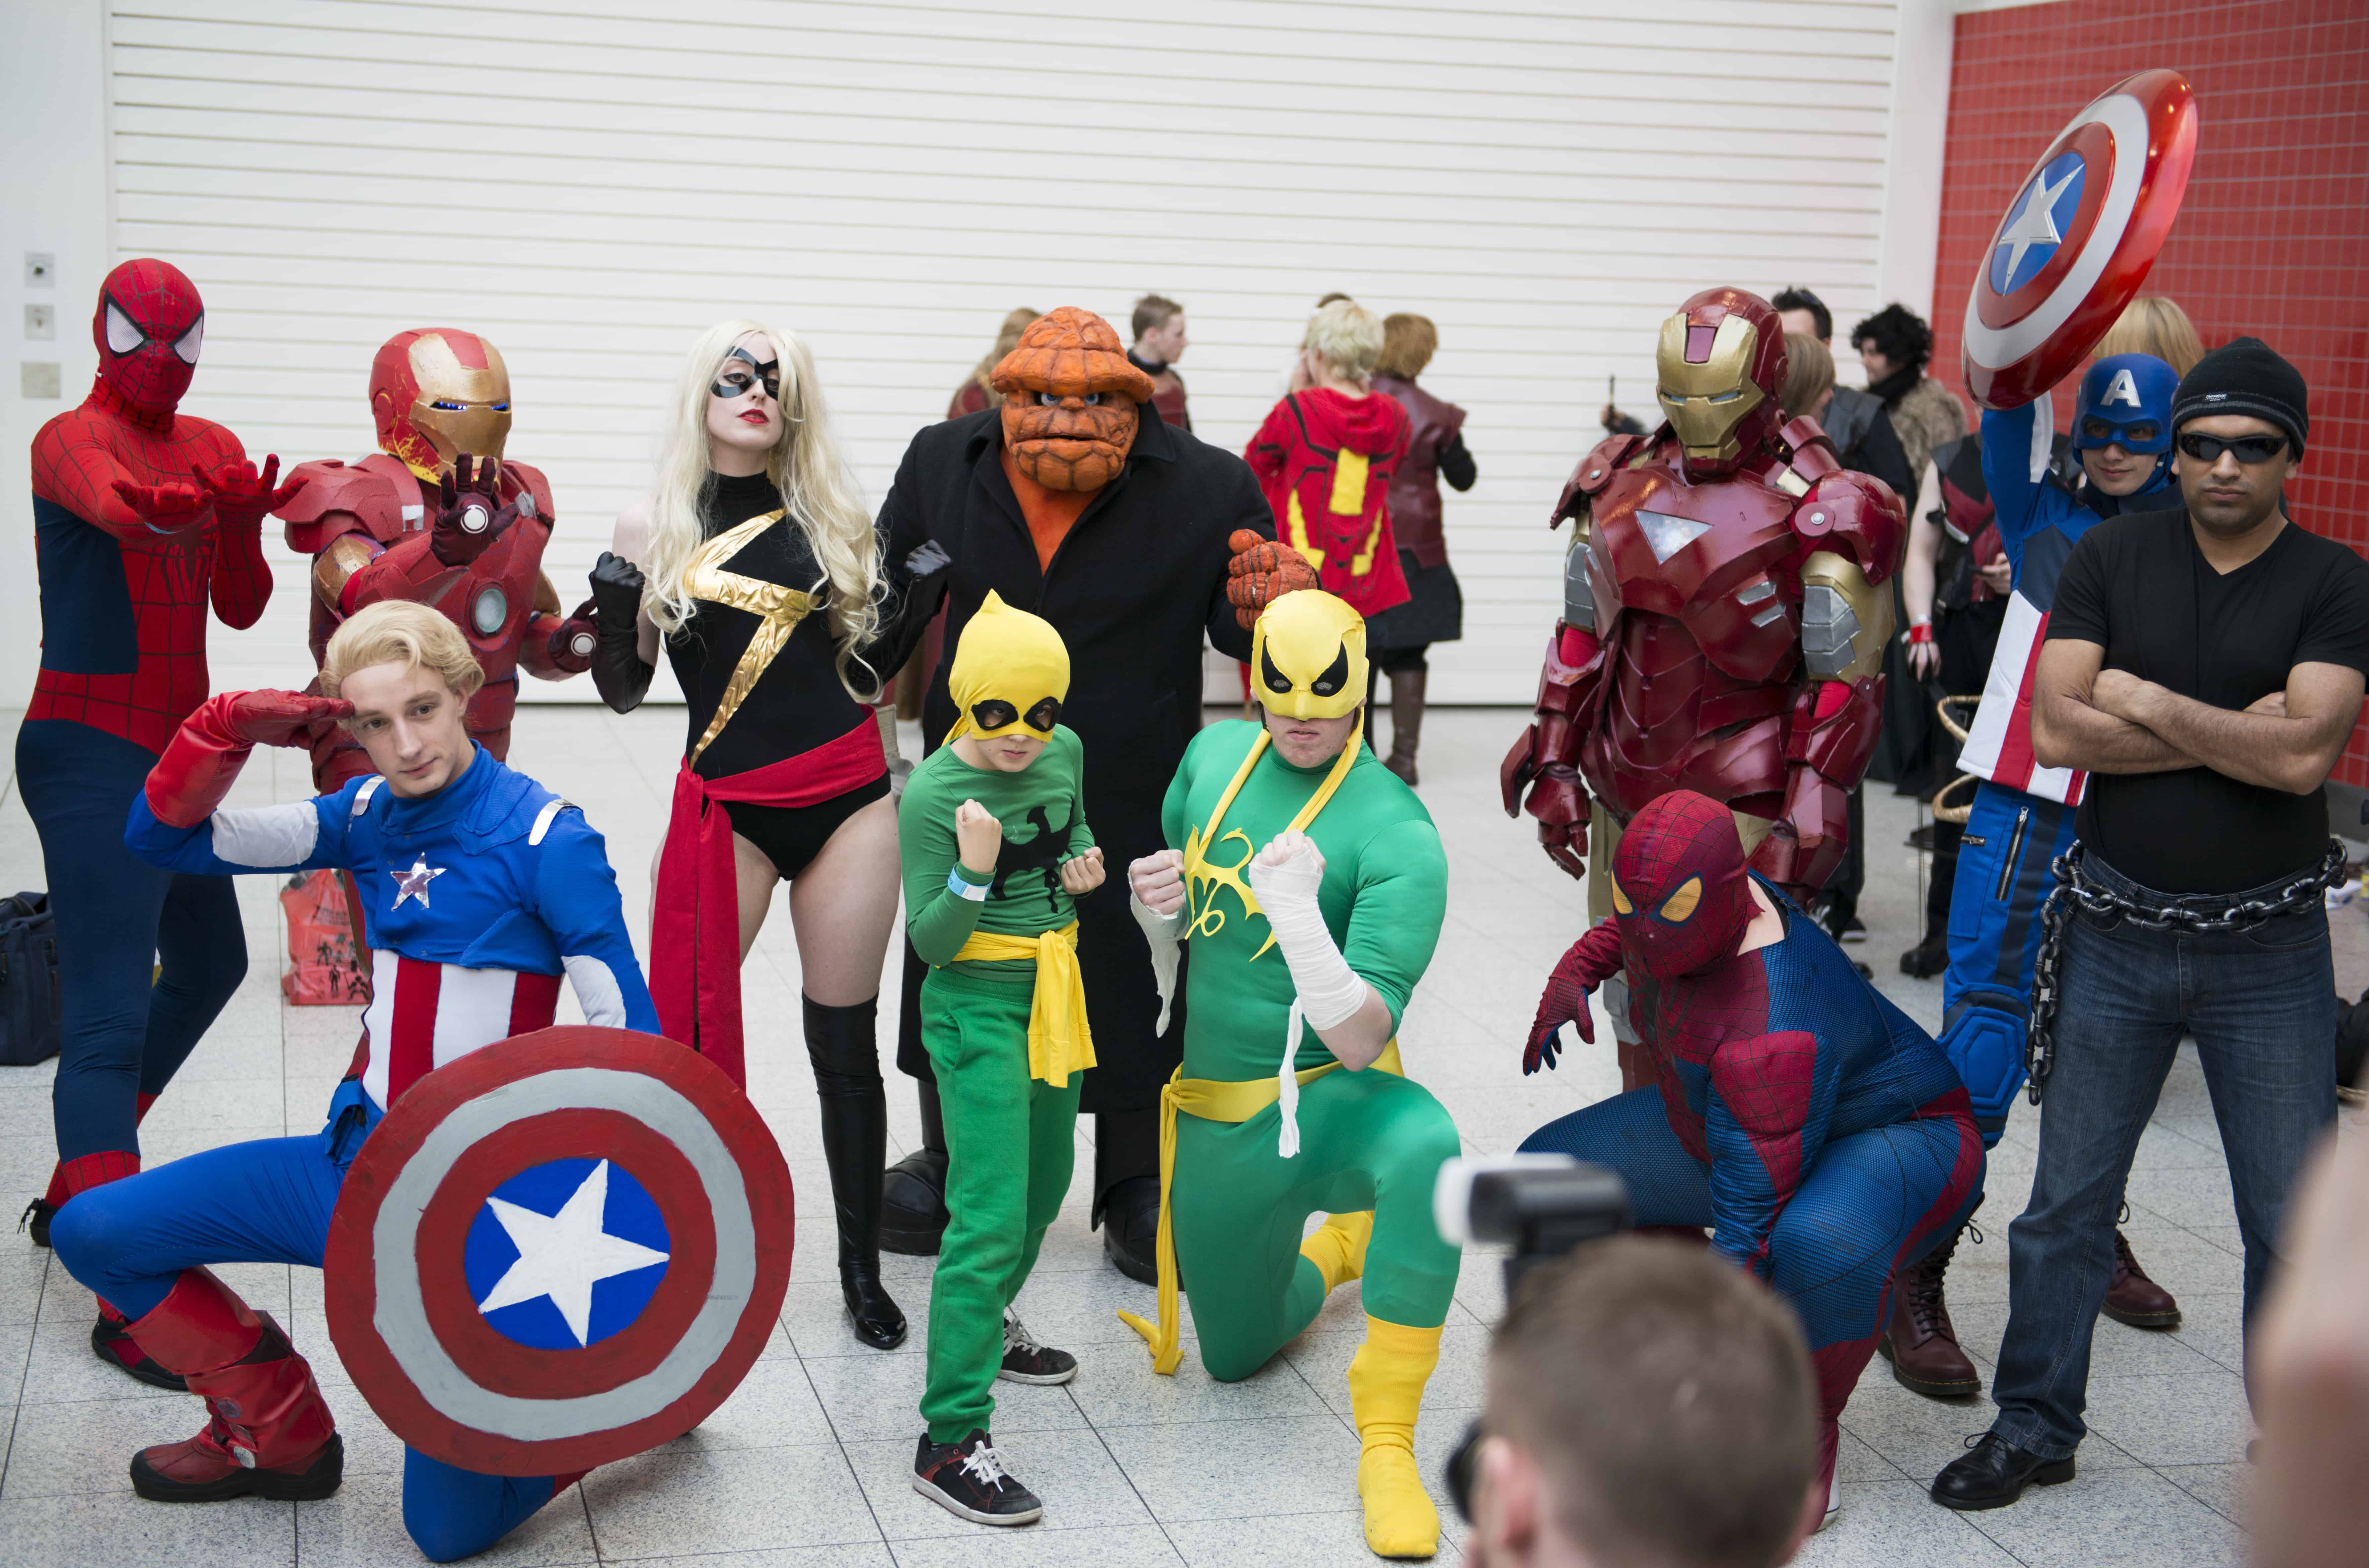 Our Top-Tips for Great Kid's Cosplay Costumes